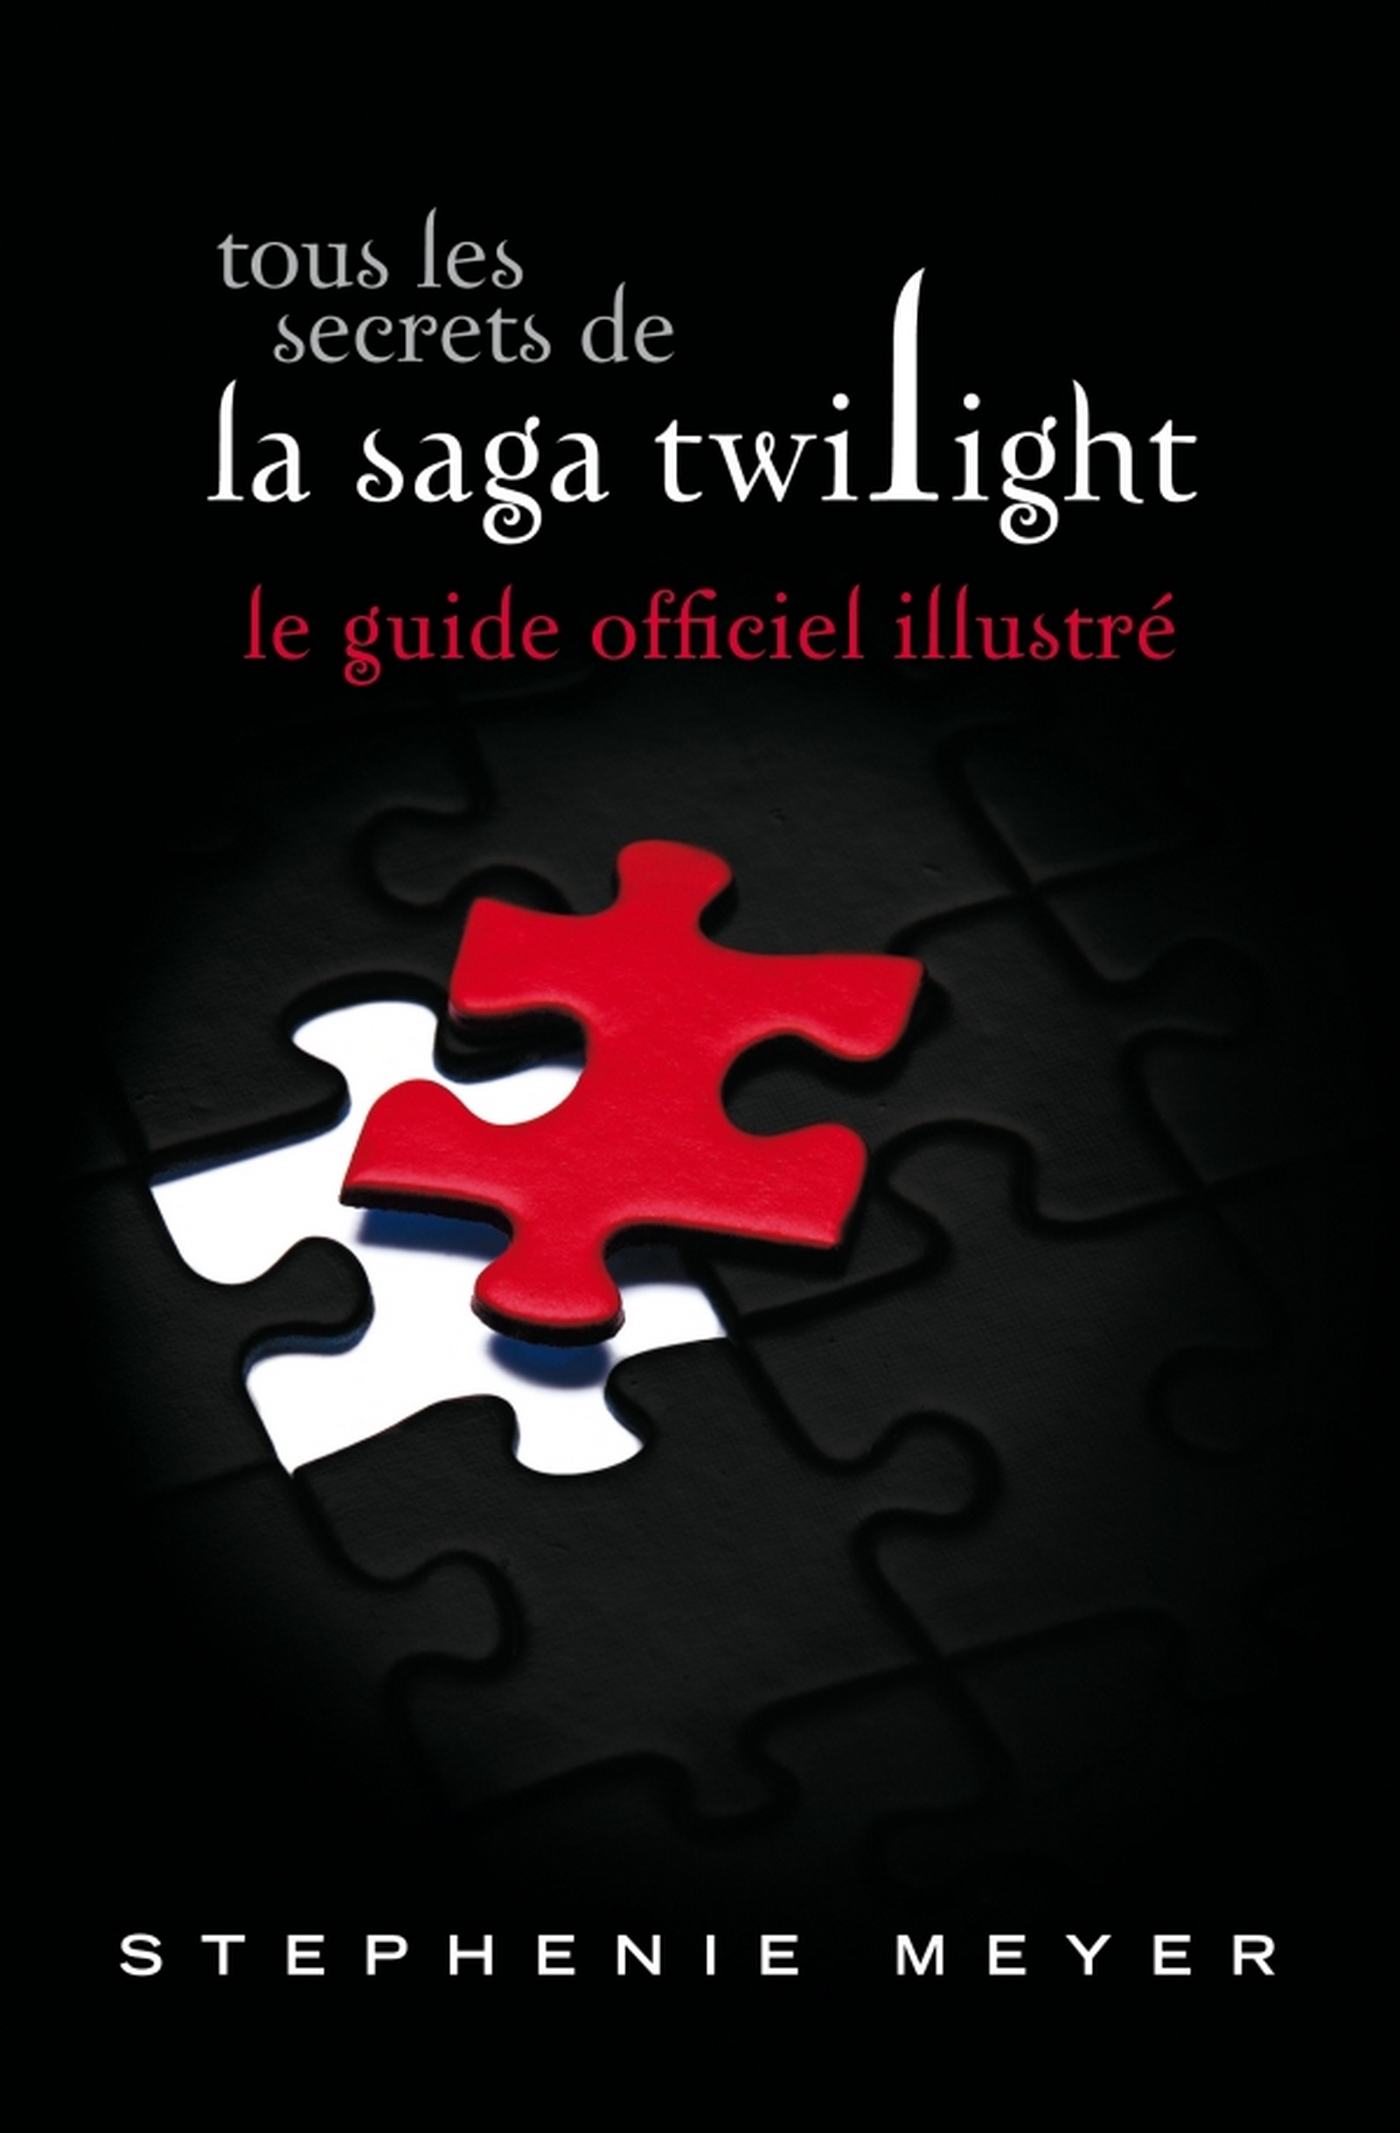 Tous les secrets de la saga Twilight : Le guide officiel illustré